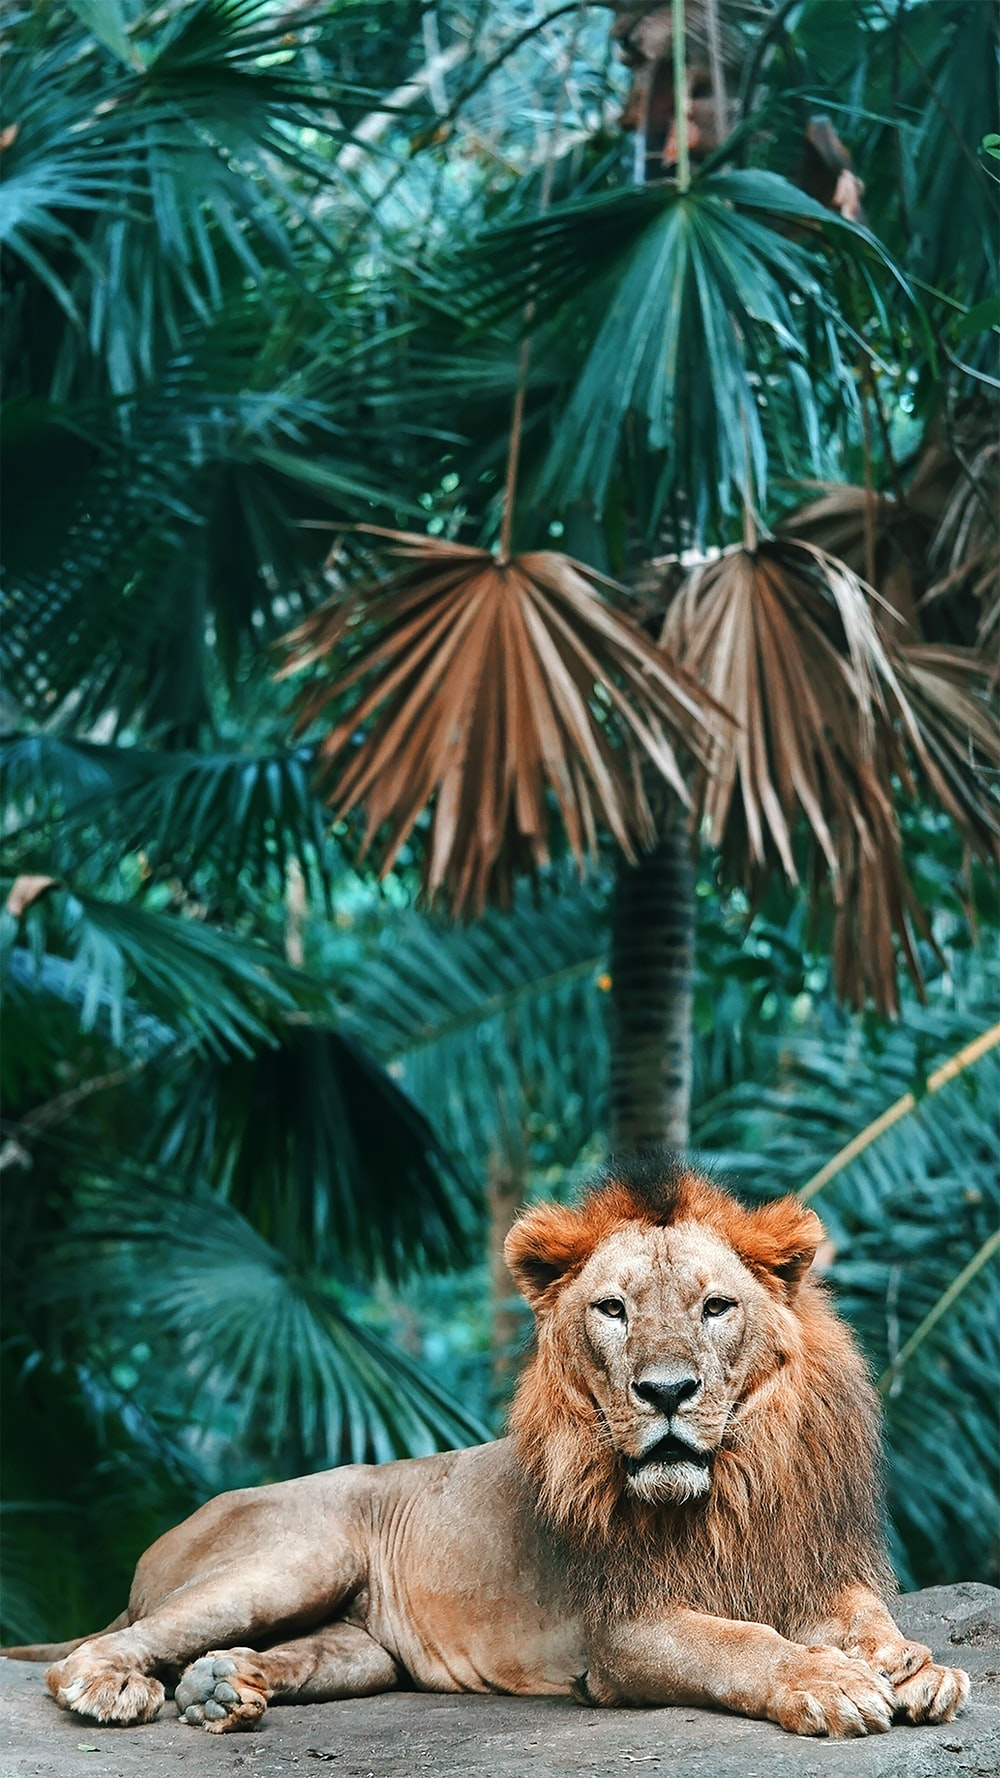 brown lion in green leaves